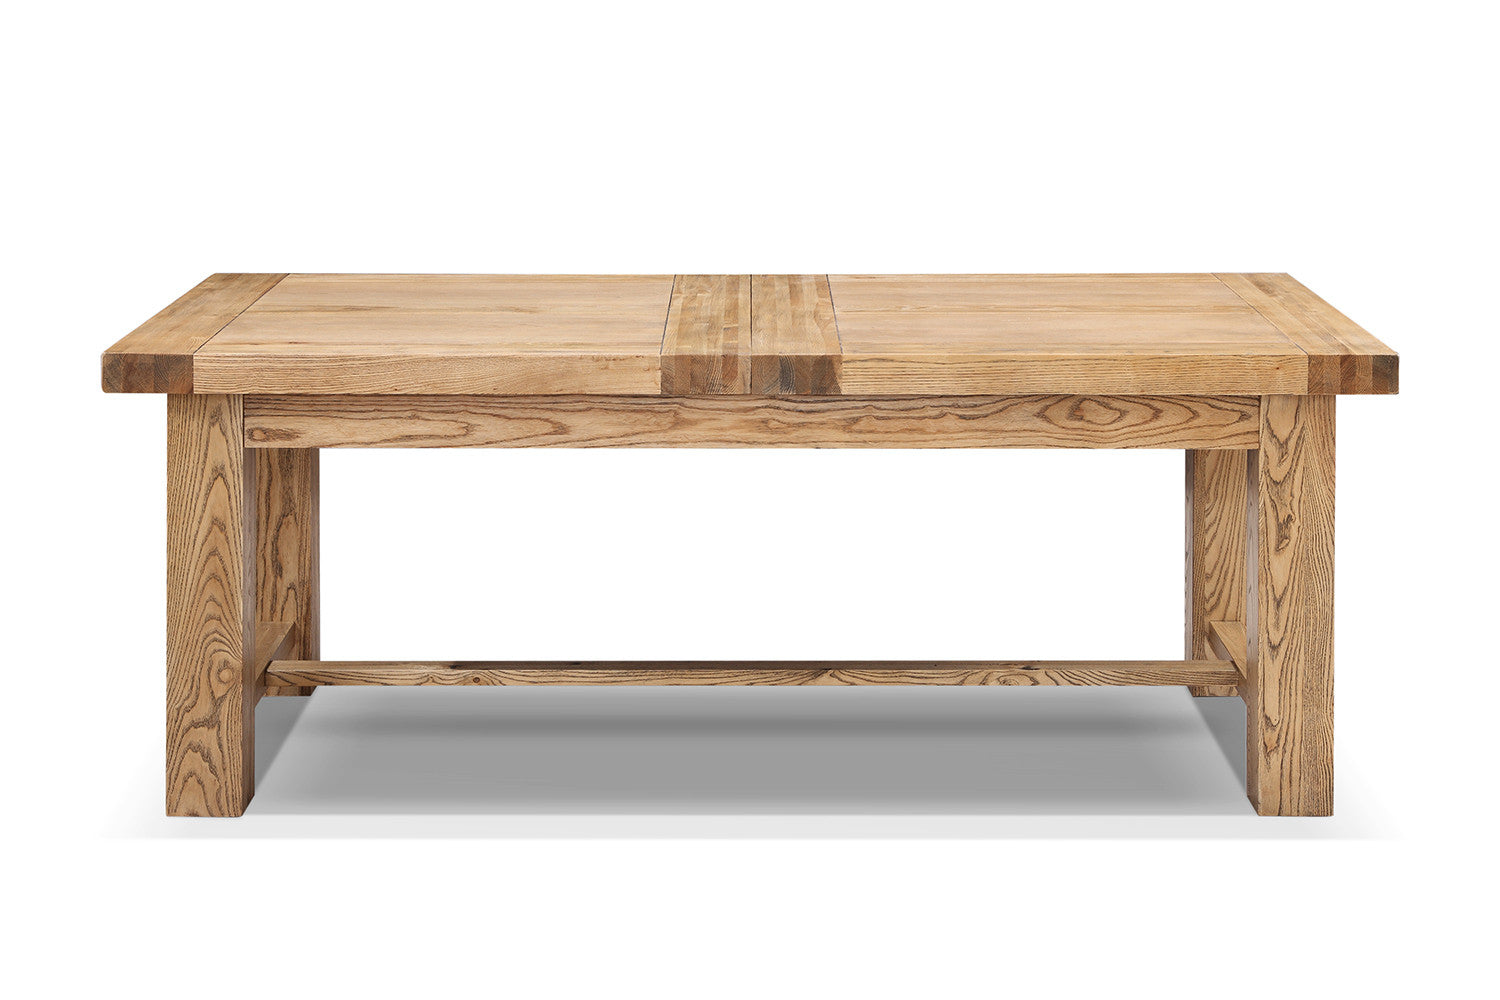 Table salle a manger extensible en bois maison design for Table a manger extensible